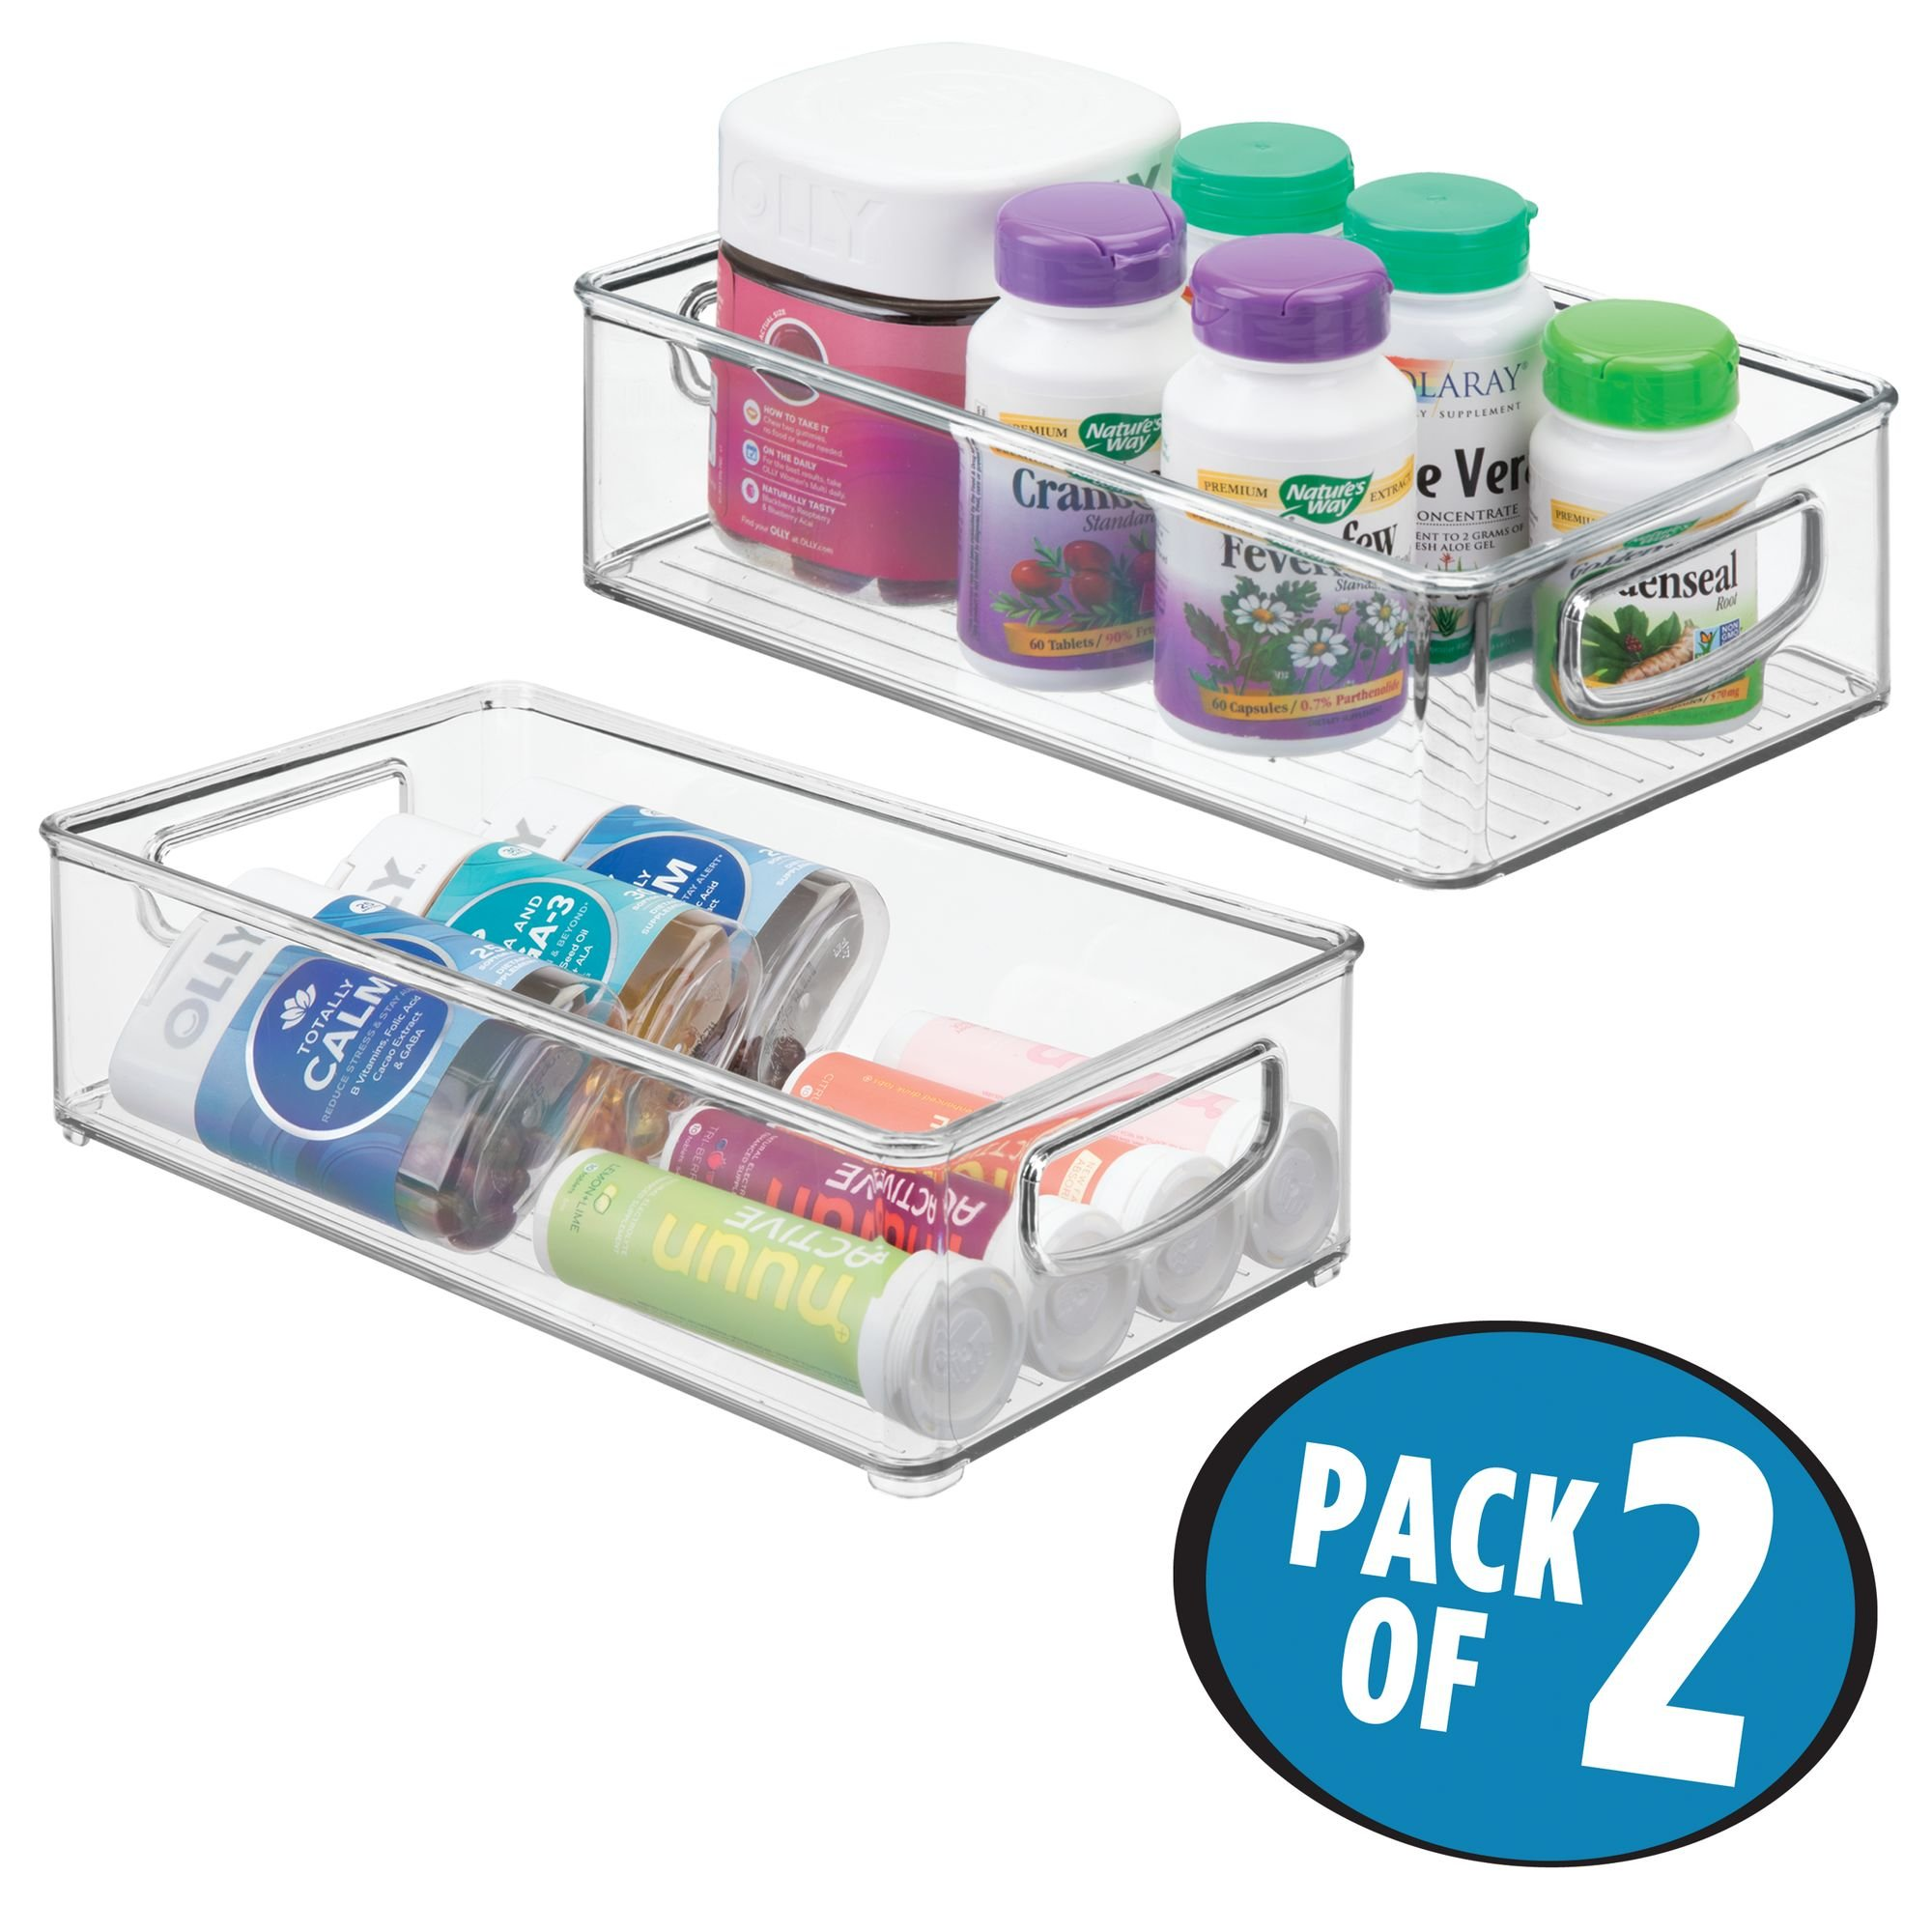 mDesign Stackable Storage Organizer Bin Tray with Built-in Handles - Holds Vitamins, Supplements, Serums, Essential Oils, Medical Supplies, First Aid Supplies - 3'' High - Pack of 2, Clear by mDesign (Image #2)